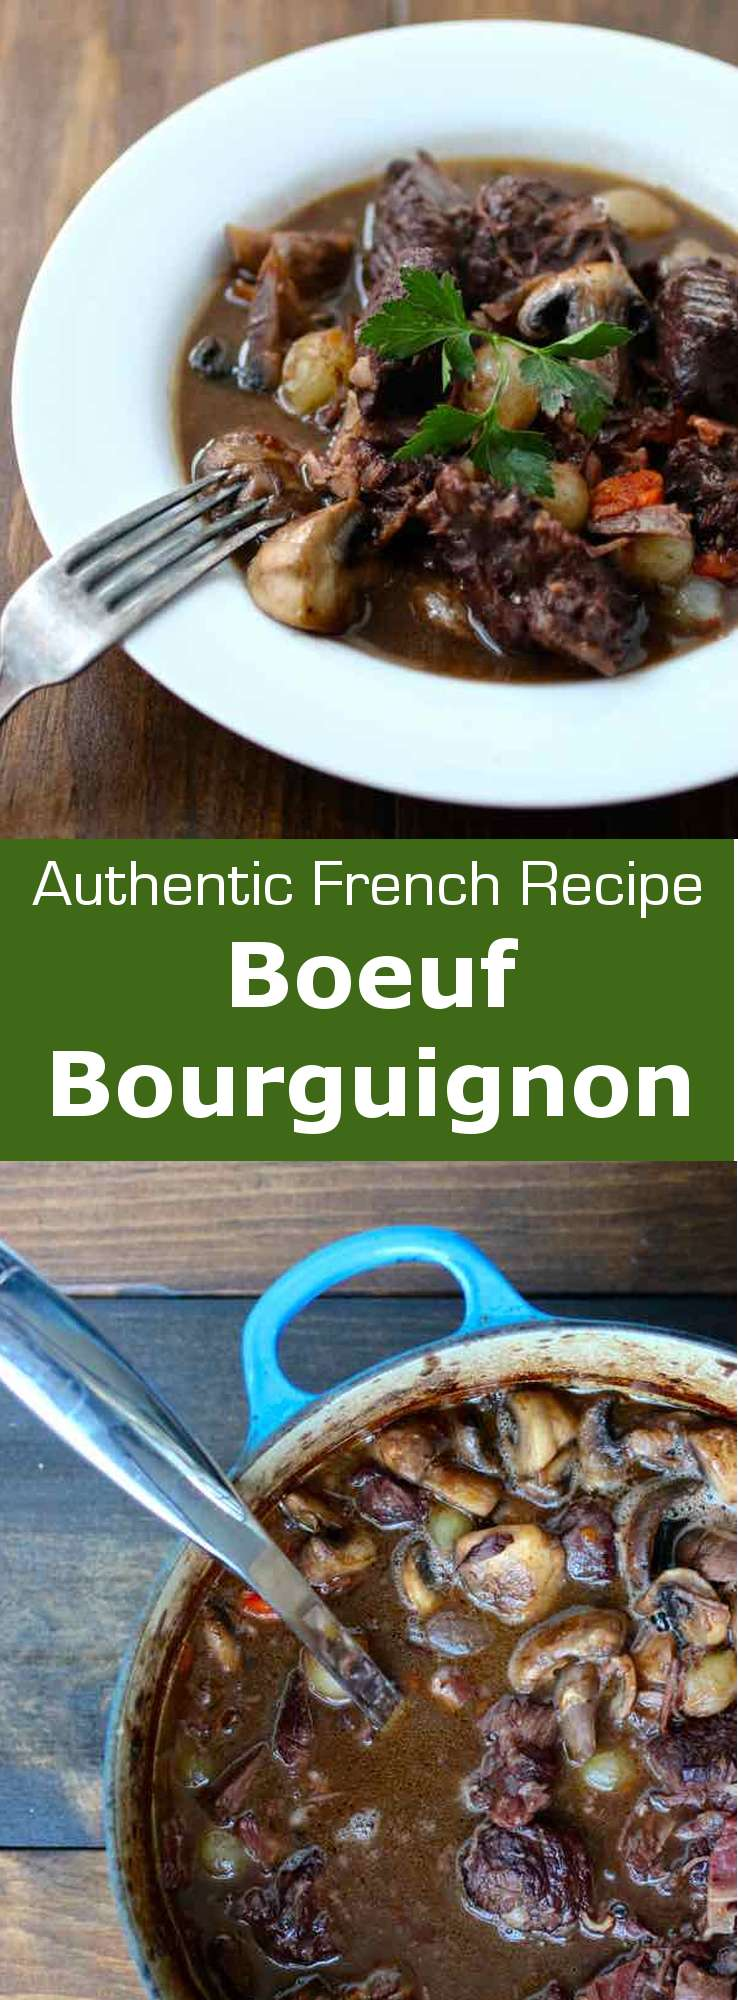 Beef Burgundy (Boeuf Bourguignon) is a traditional French stew simmered in red wine and typically served with potatoes. #FrenchCuisine #France #196flavors